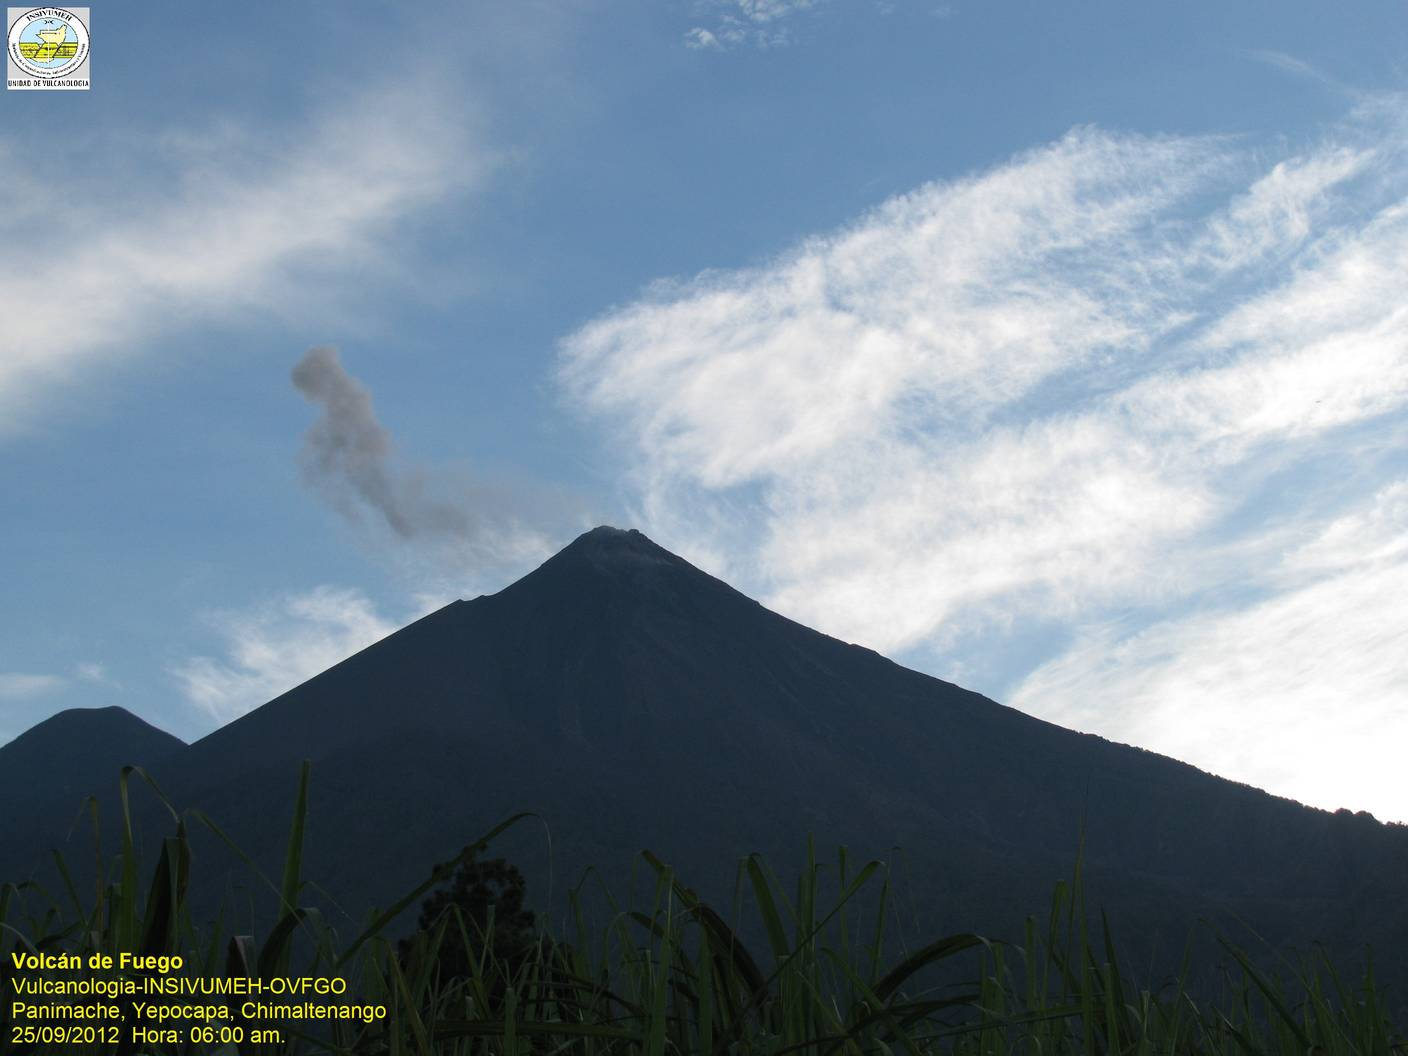 Fuego volcano with a small blast ash cloud seen from the observatory